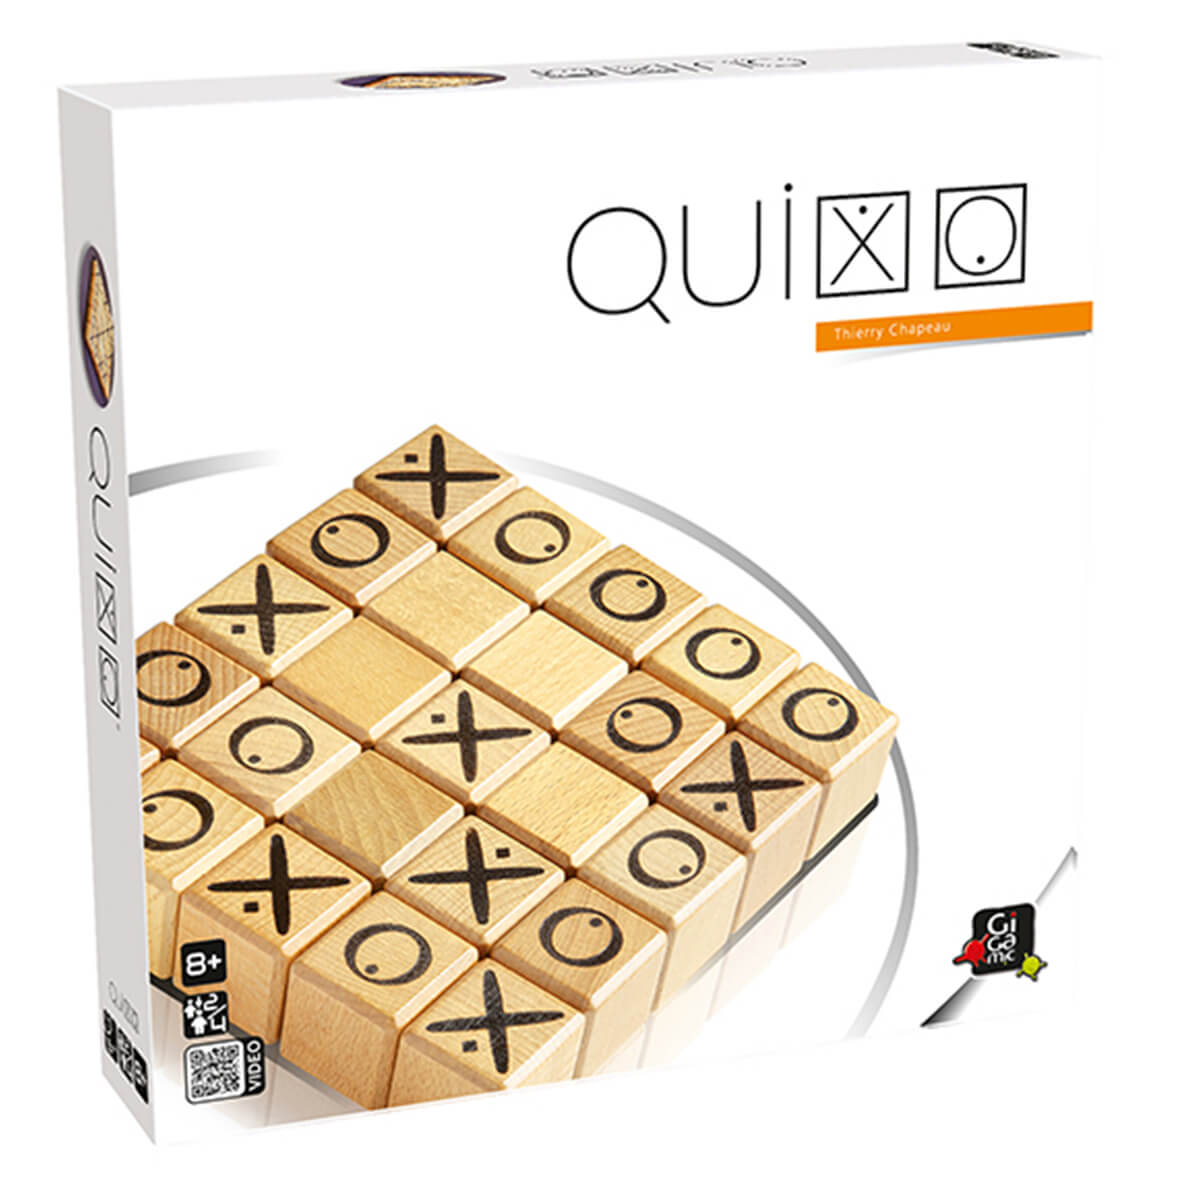 Gigamic QUIXO  GCQI Board Game